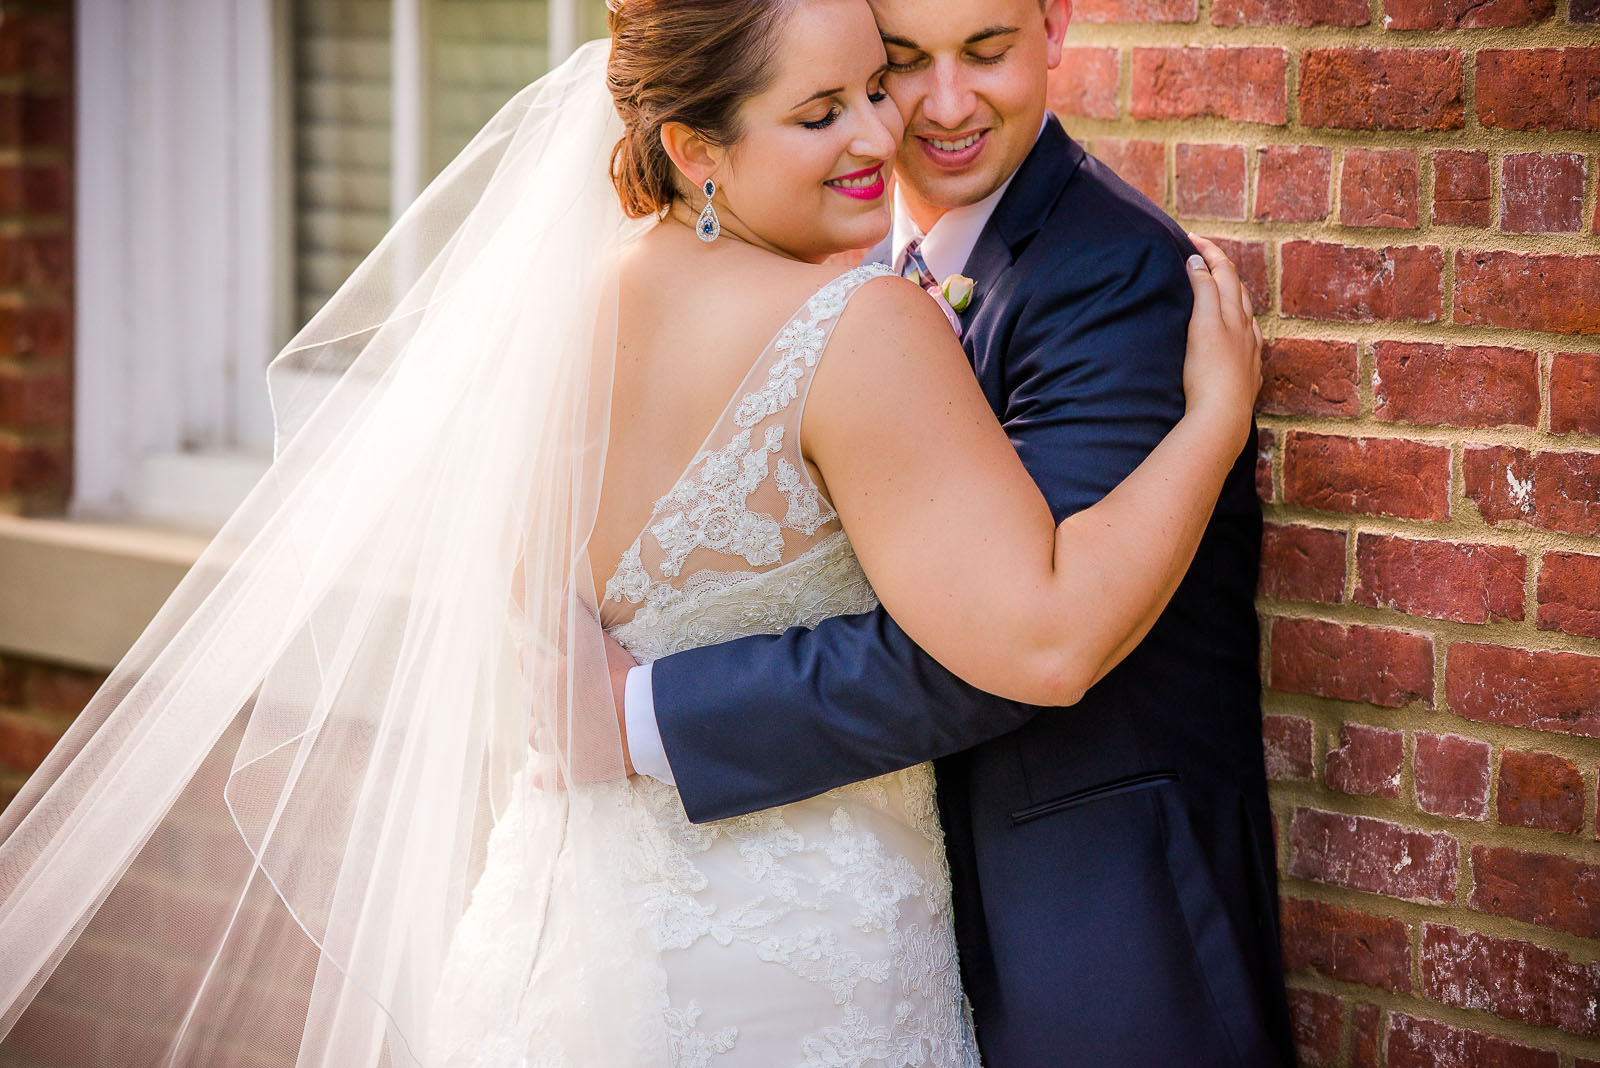 Eric_and_Christy_Photography_Blog_Wedding_Paige_Eric-35